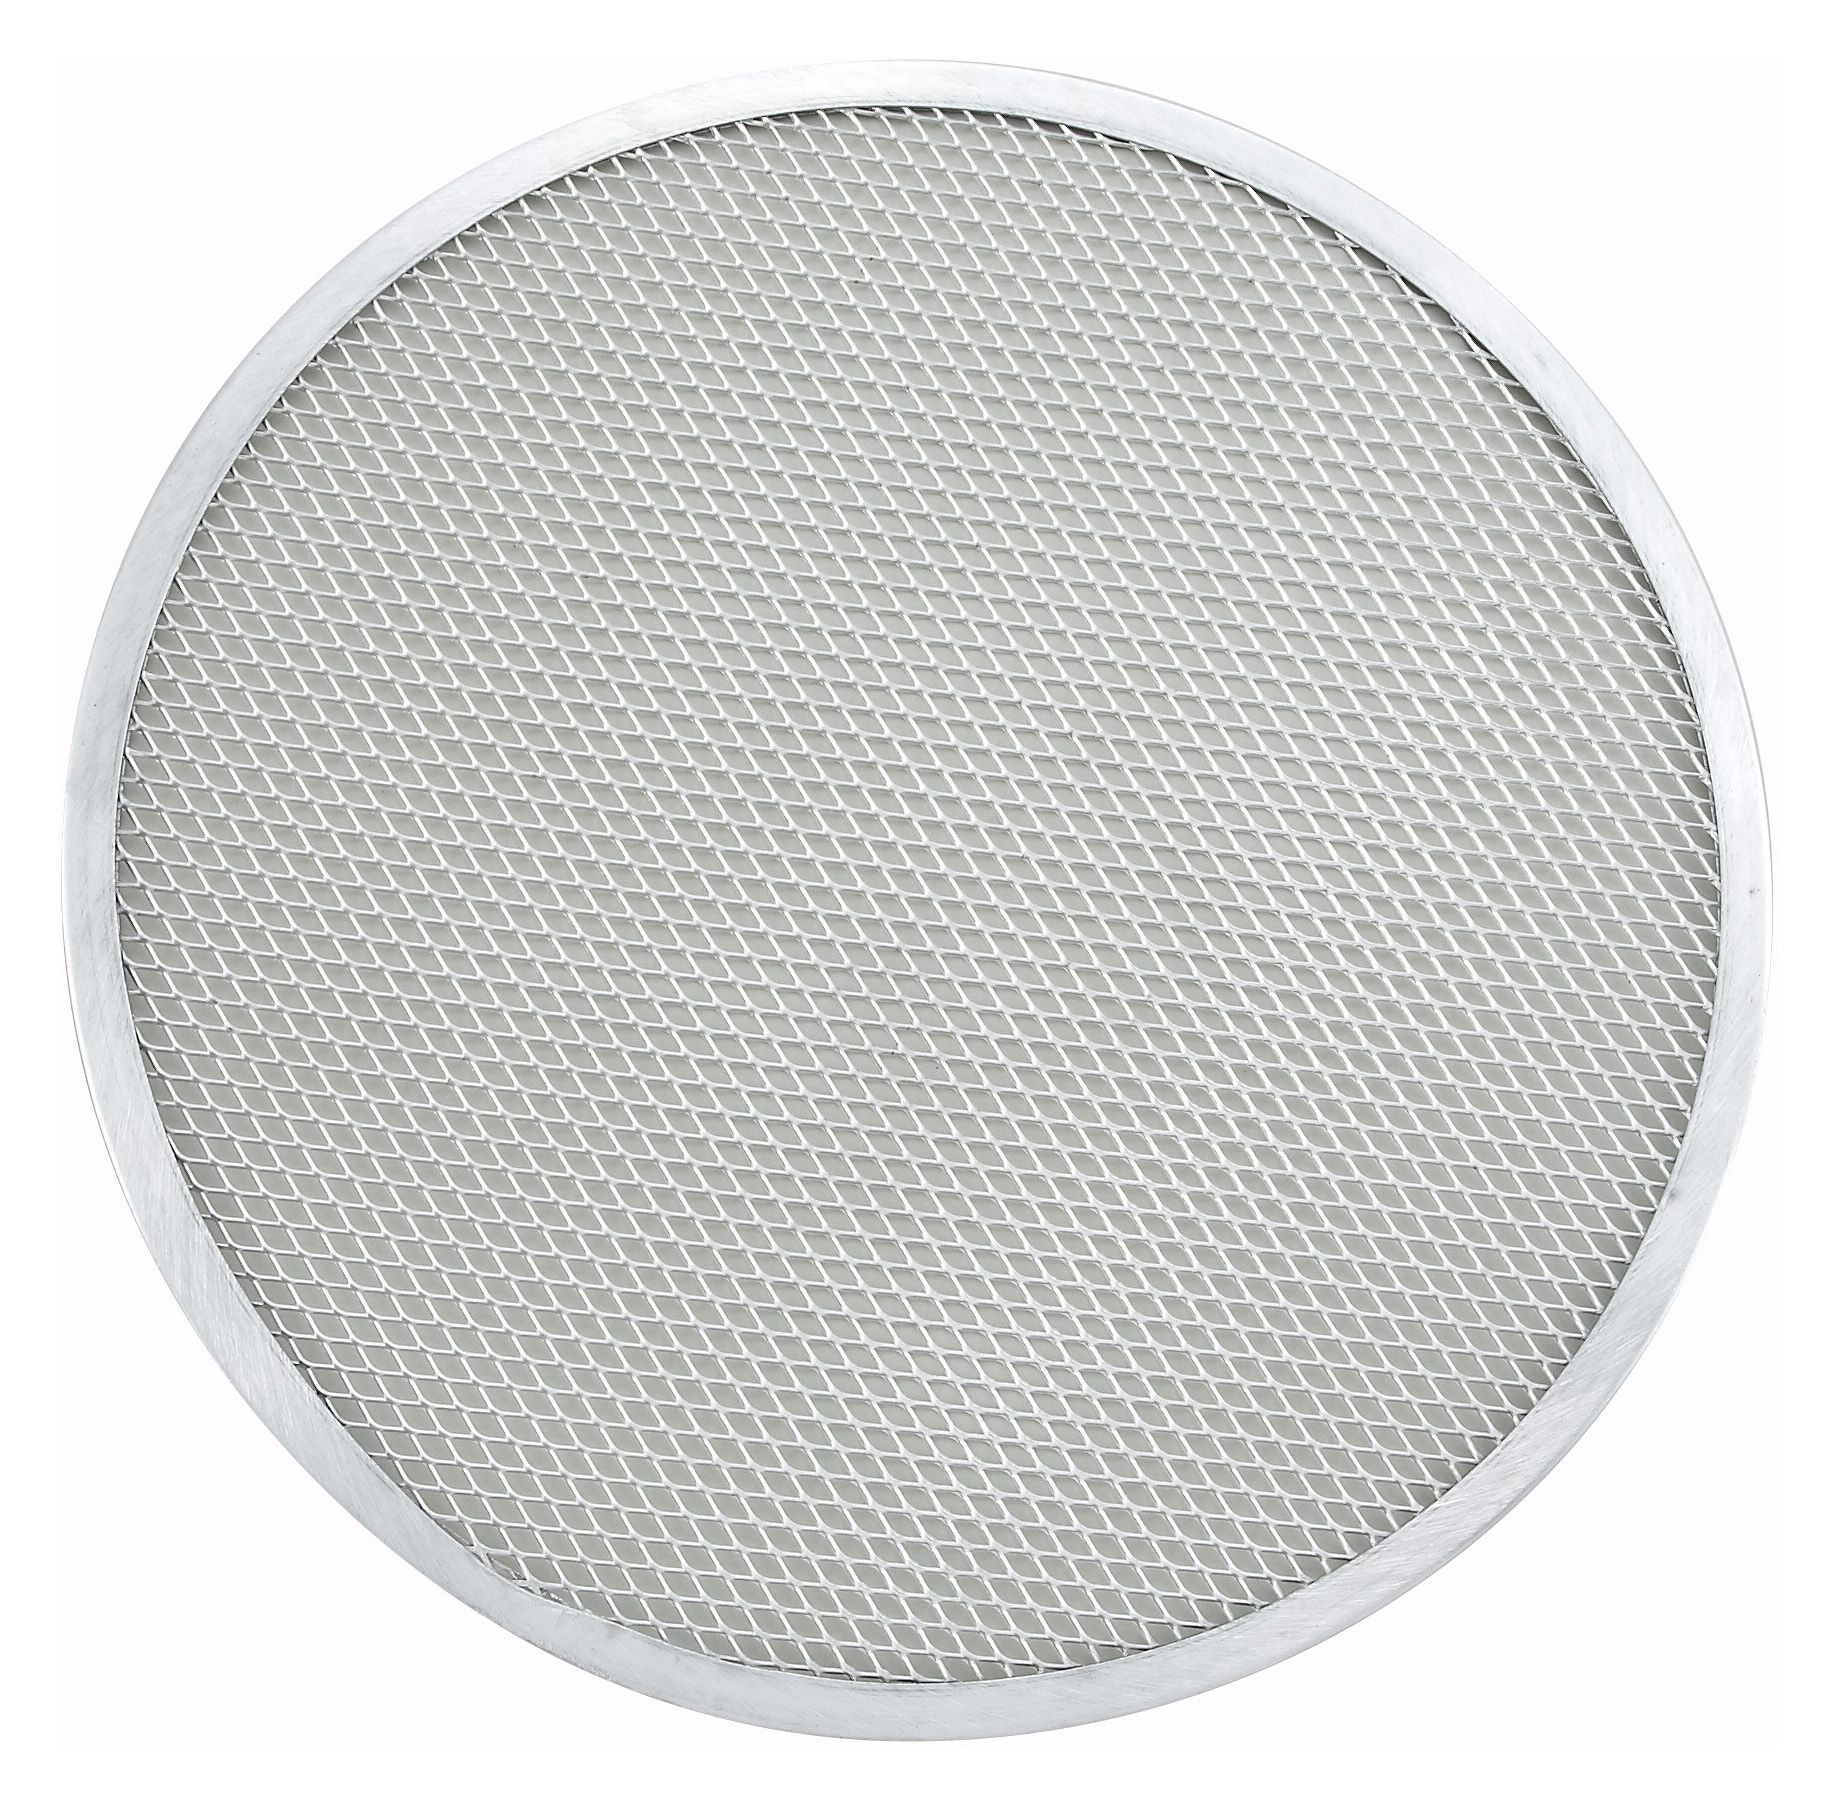 "Winco APZS-13 Seamless Aluminum Pizza Screen 13"" Dia."